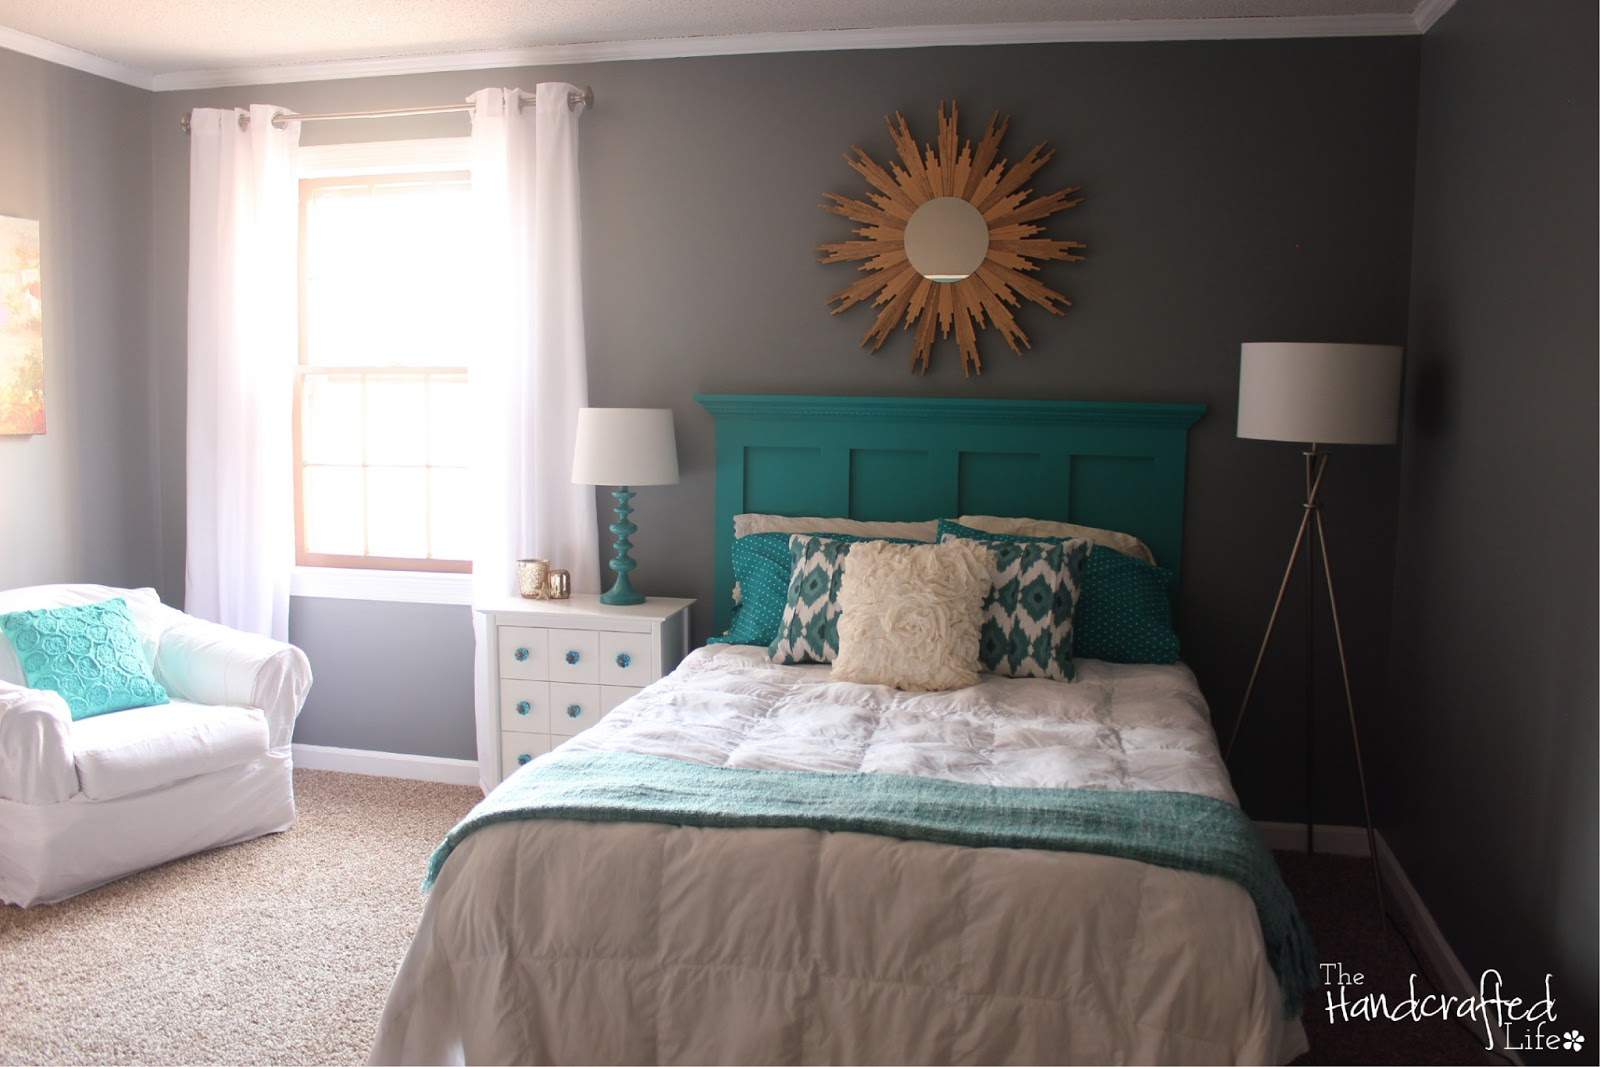 The Handcrafted Life   Teal  White and Grey Guest Bedroom Reveal Teal  White and Grey Guest Bedroom Reveal